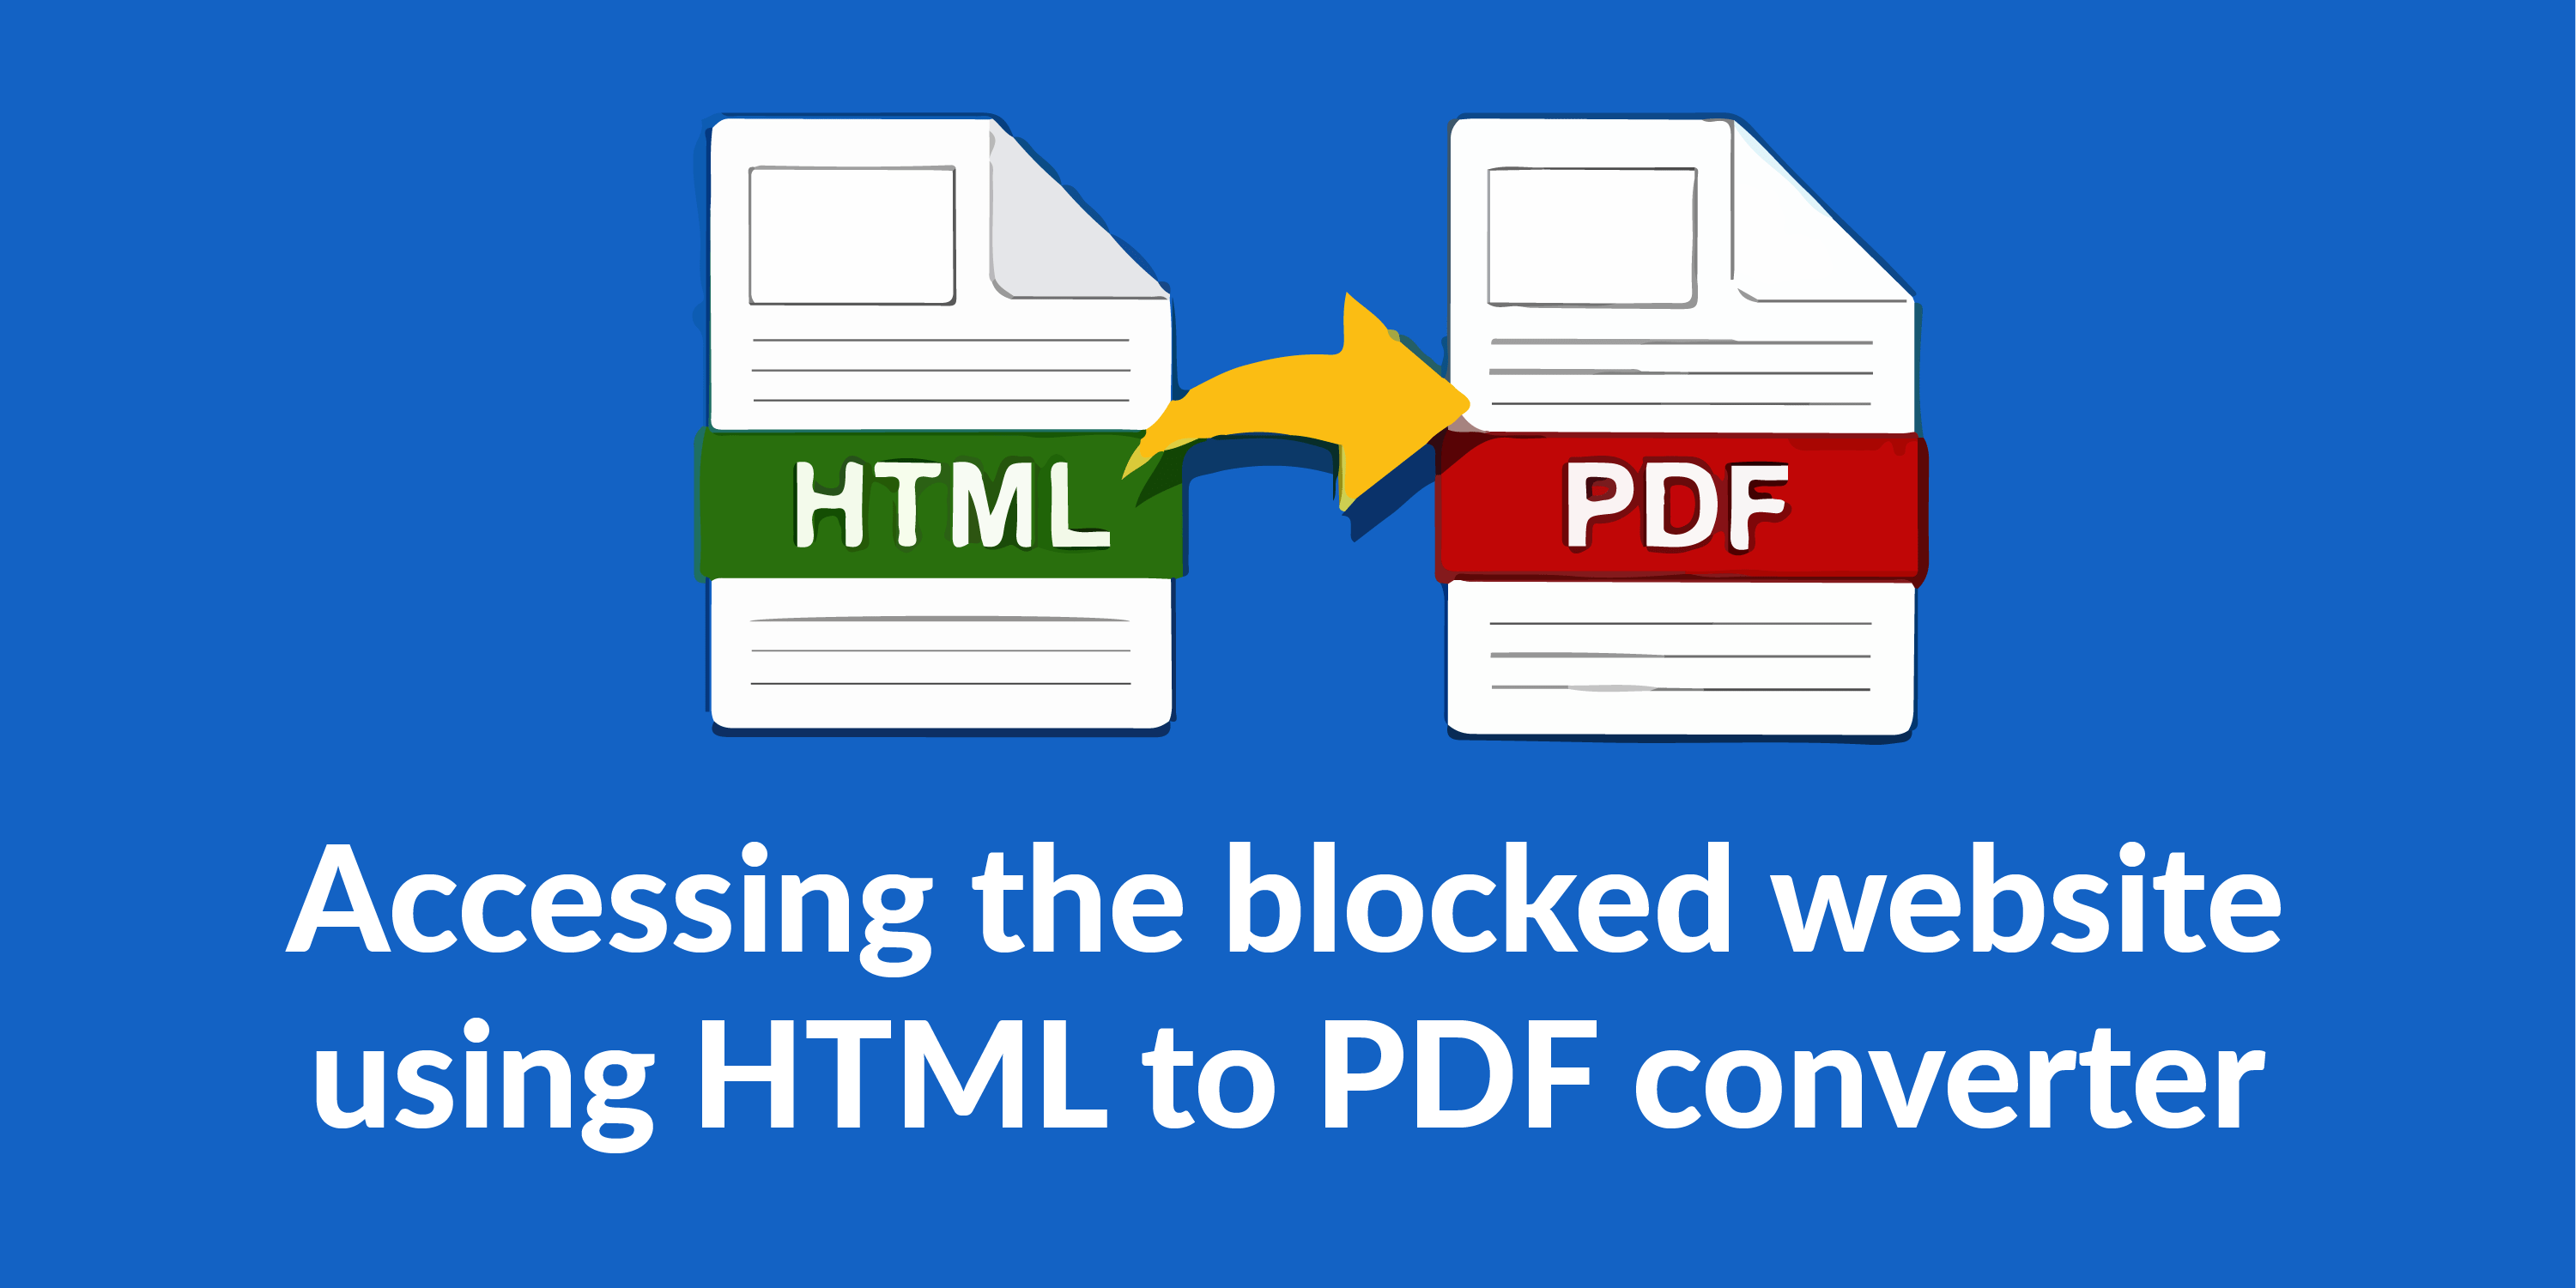 Accessing the Blocked Websites Using HTML to PDF Converter